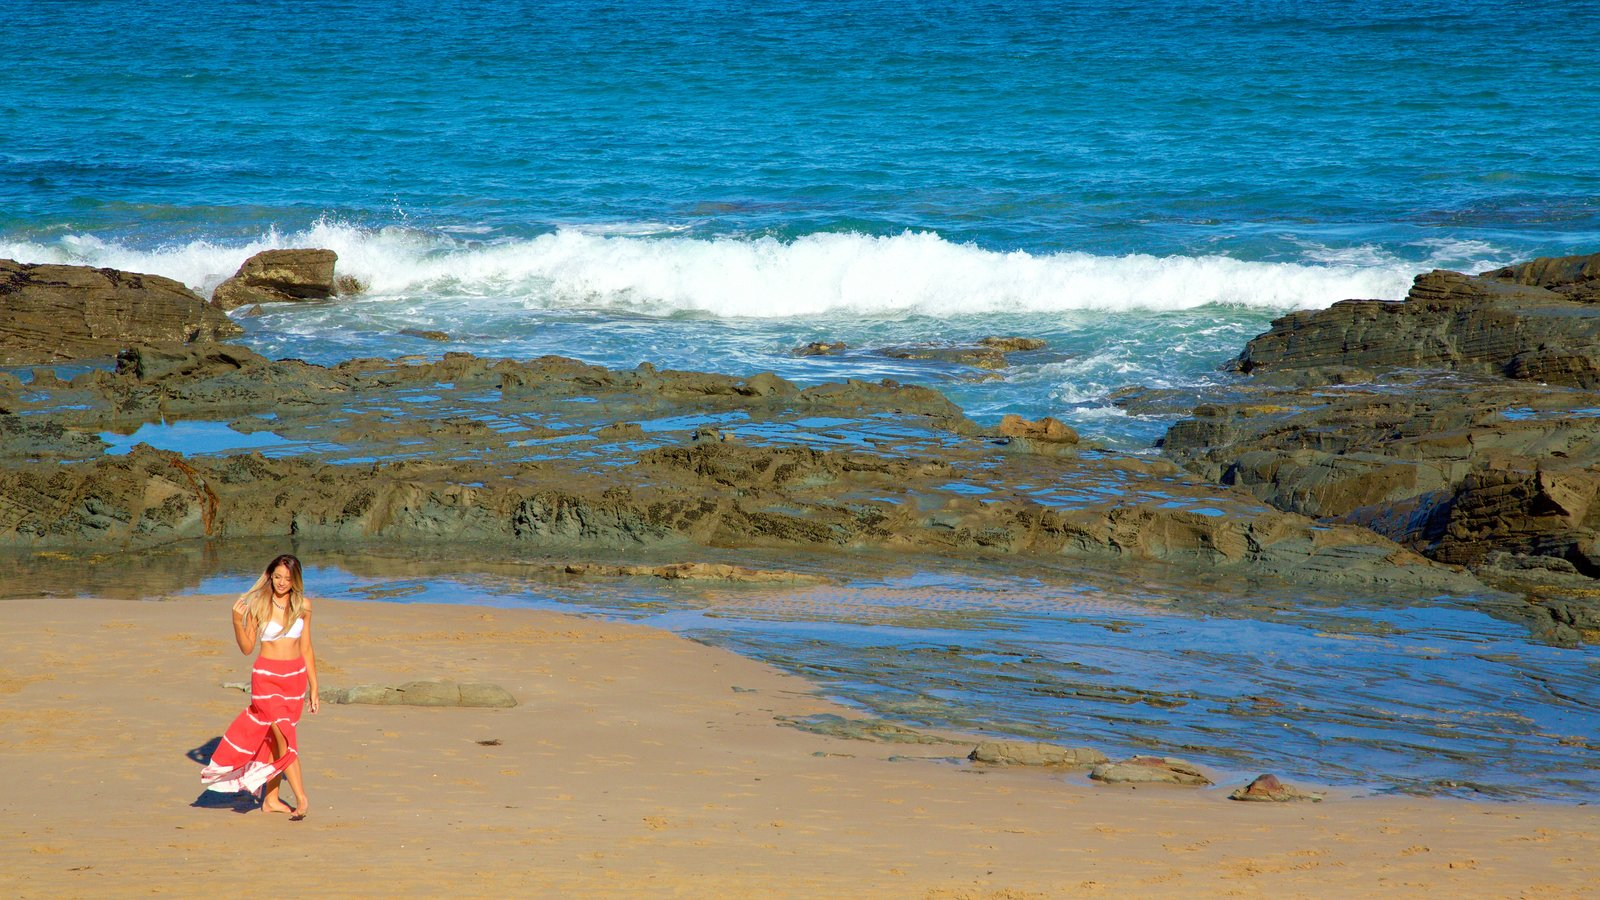 Lorne which includes rugged coastline as well as an individual femail